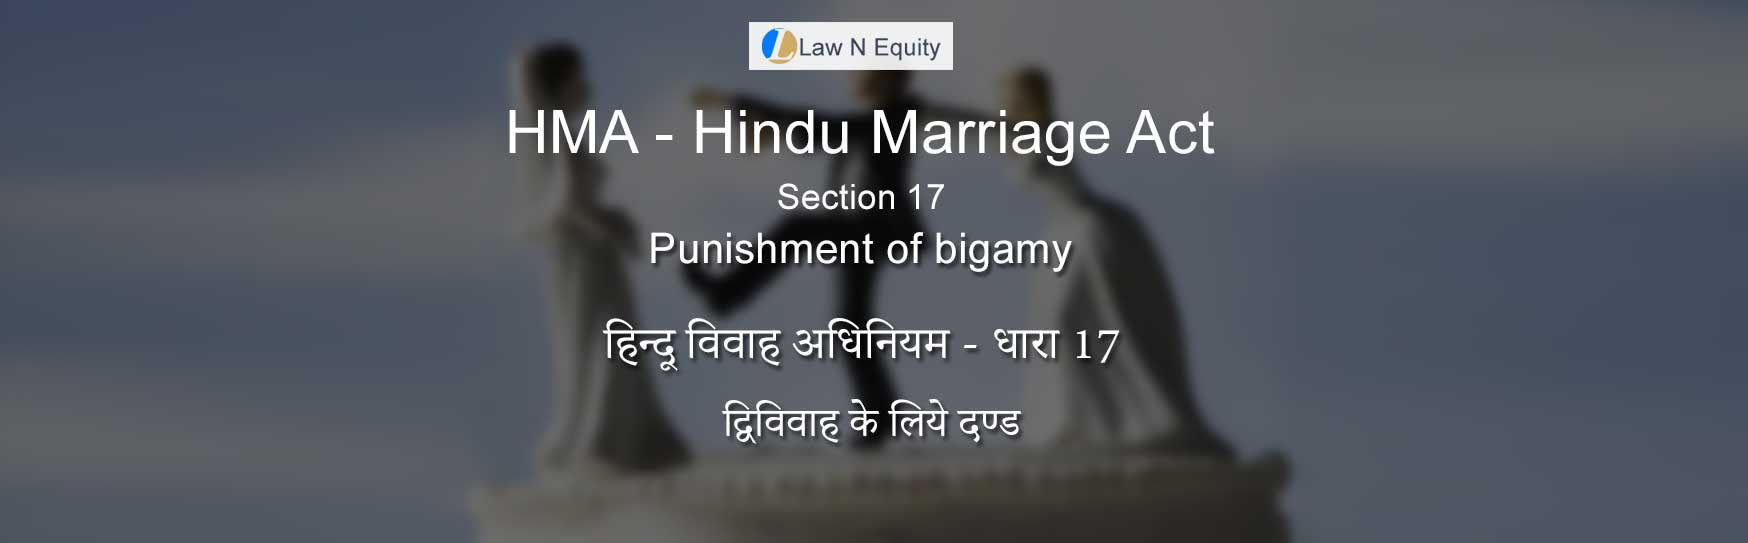 Hindu Marriage Act(HMA) Section 17